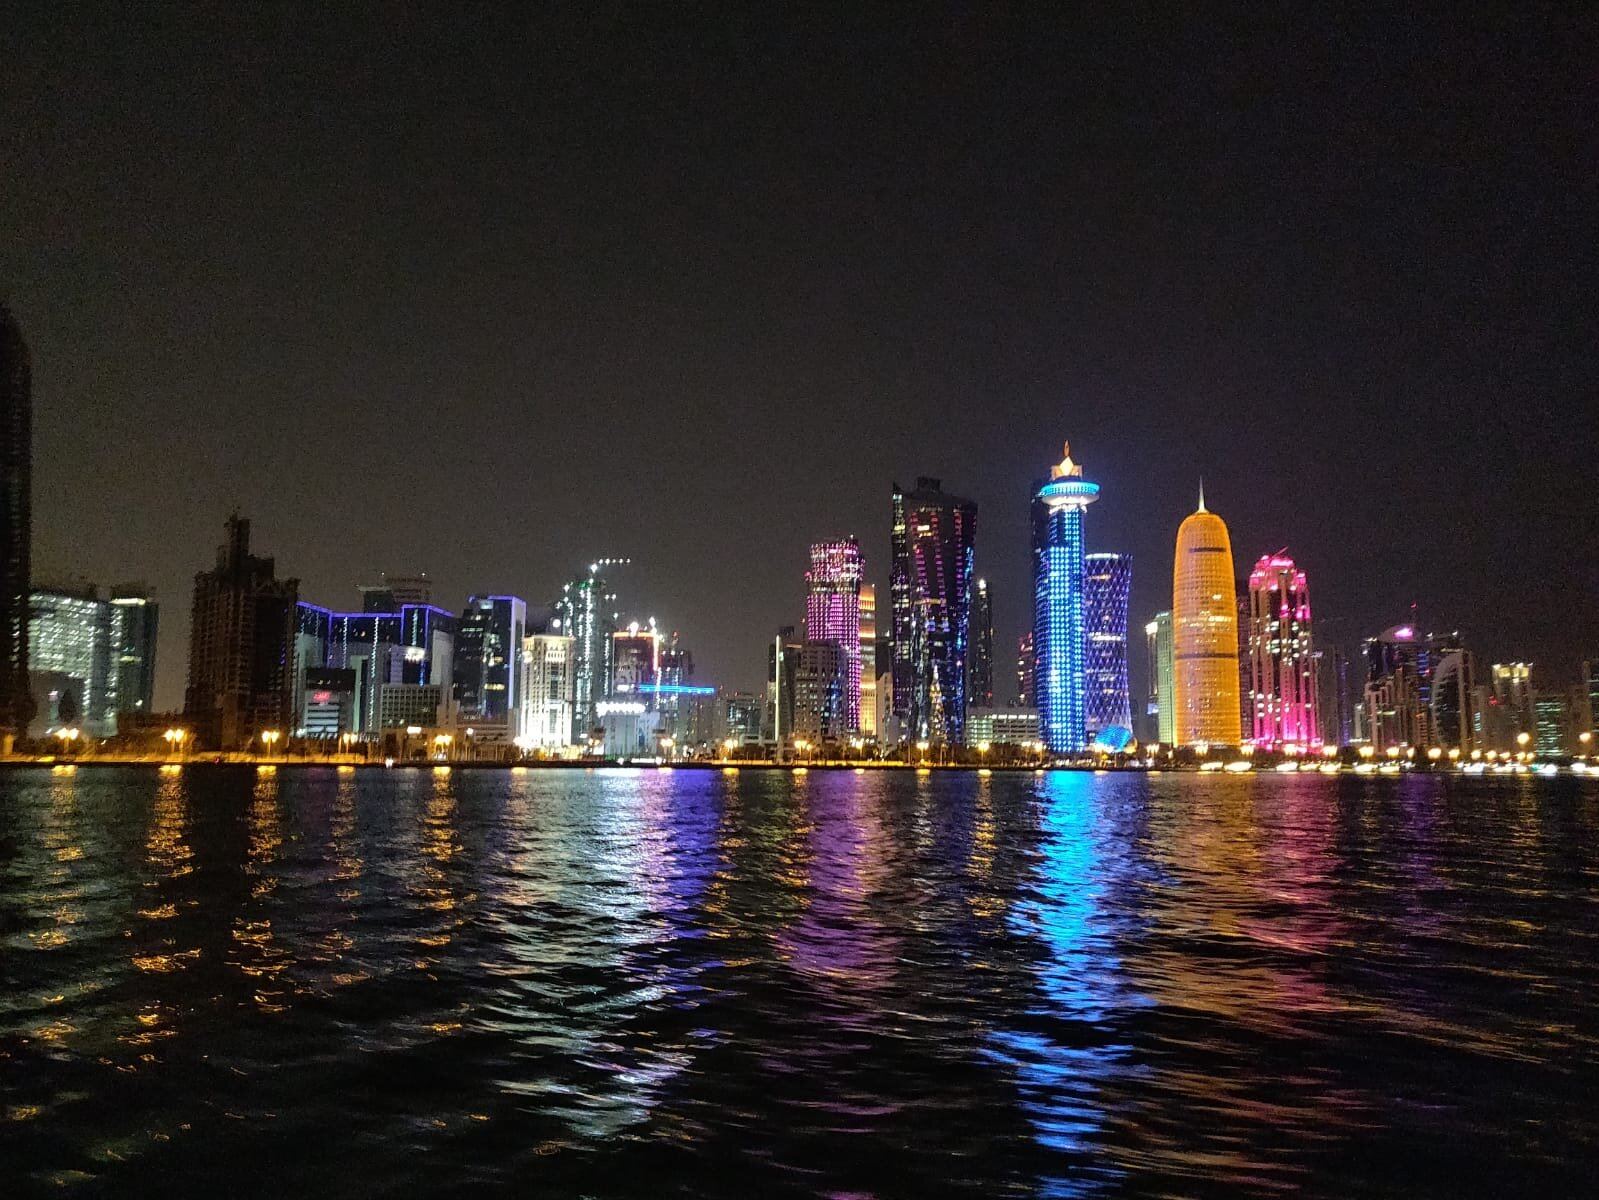 At night Doha glistens like gems along the water.